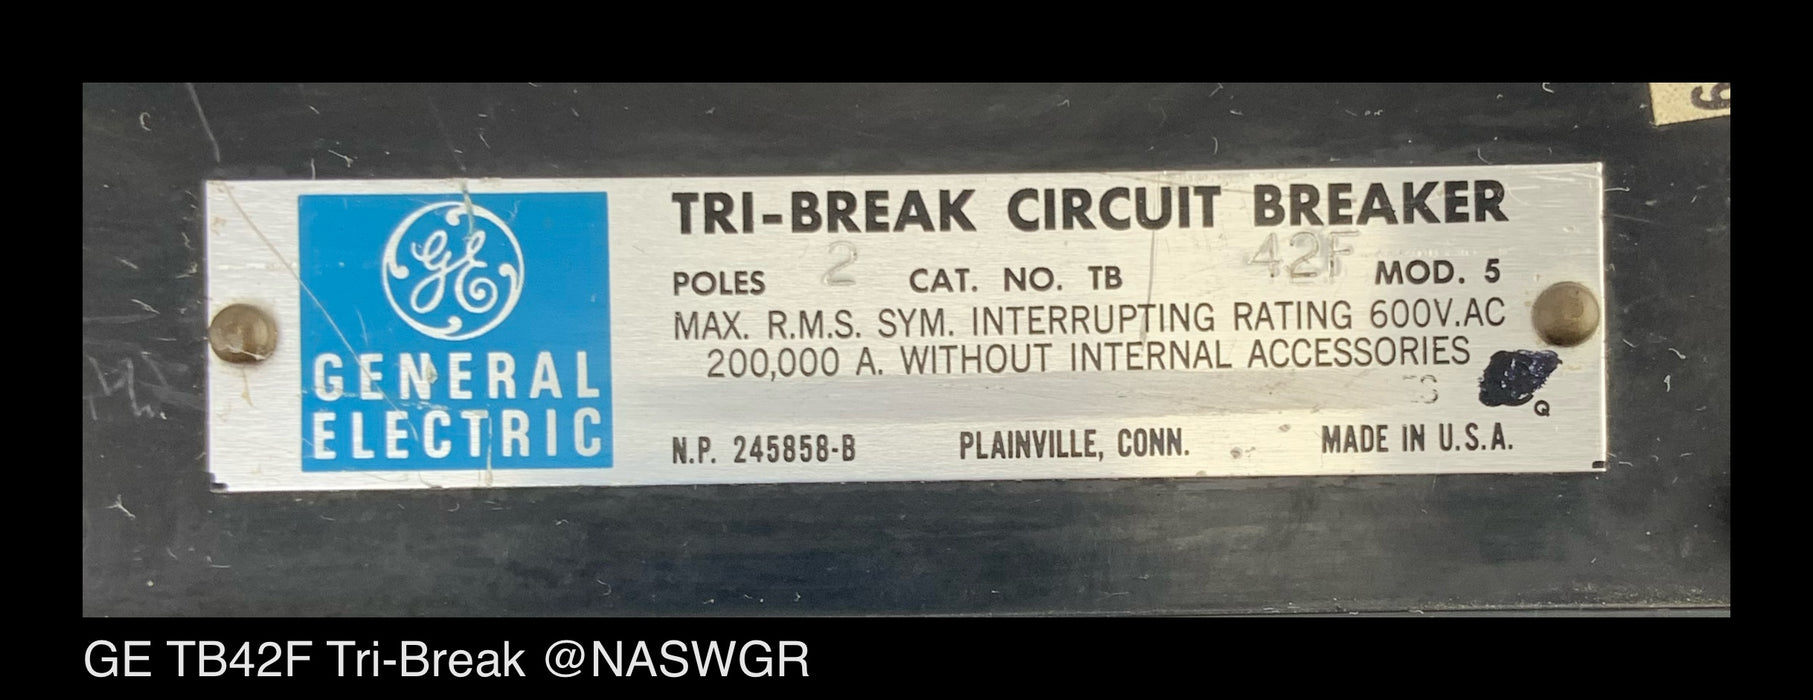 GE TB42F Tri-Break Circuit Breaker